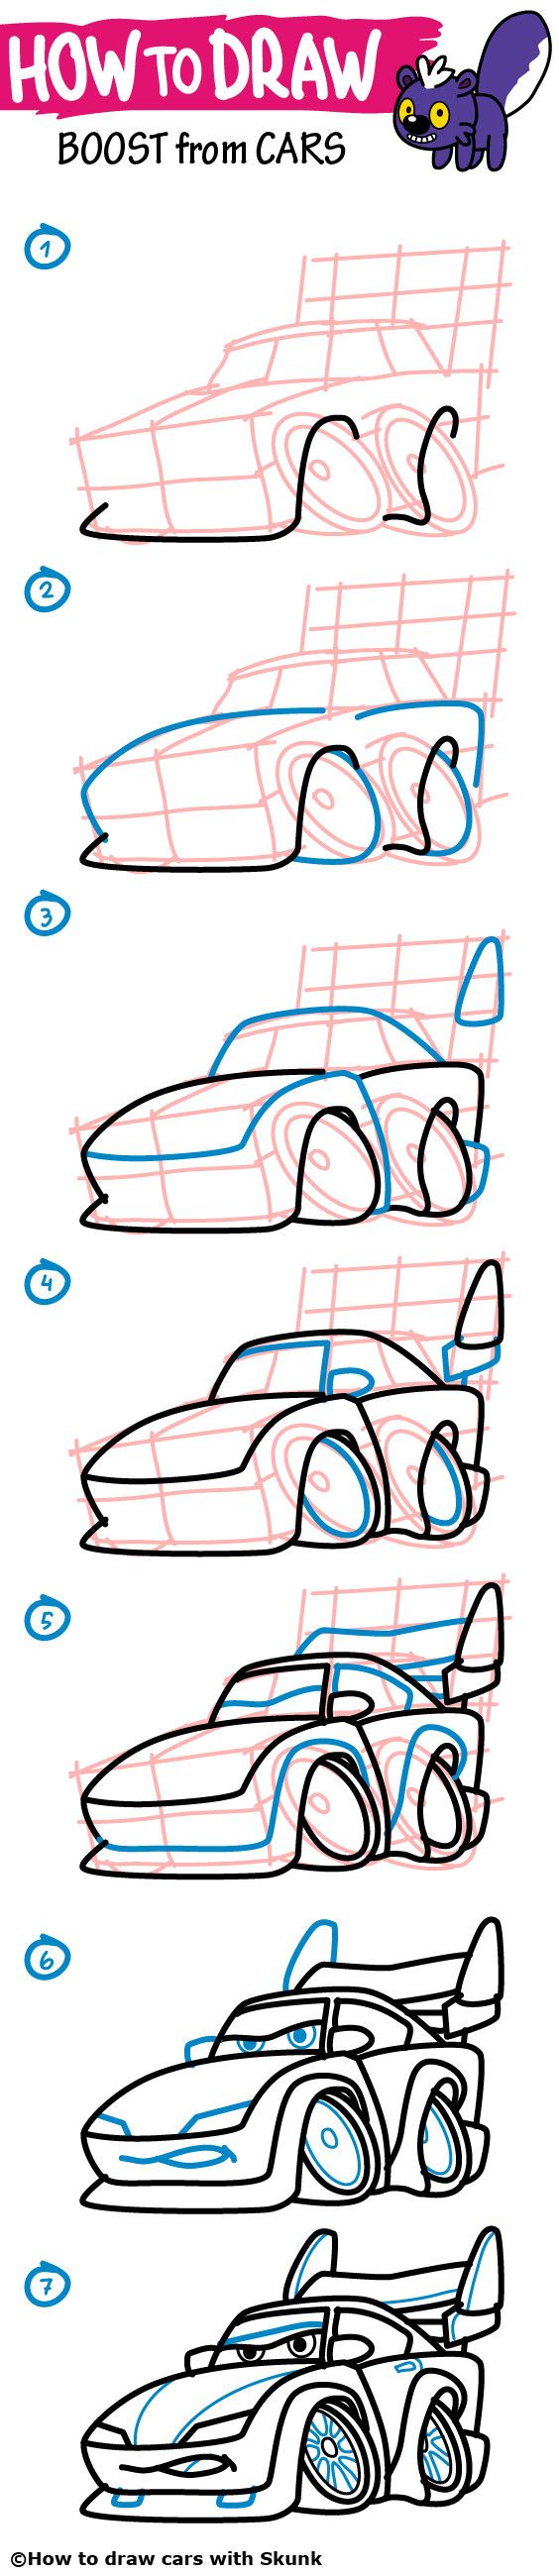 how to draw cars step by step boost from disney pixars cars easy how to draw a car step by step for kids toddlers and parents